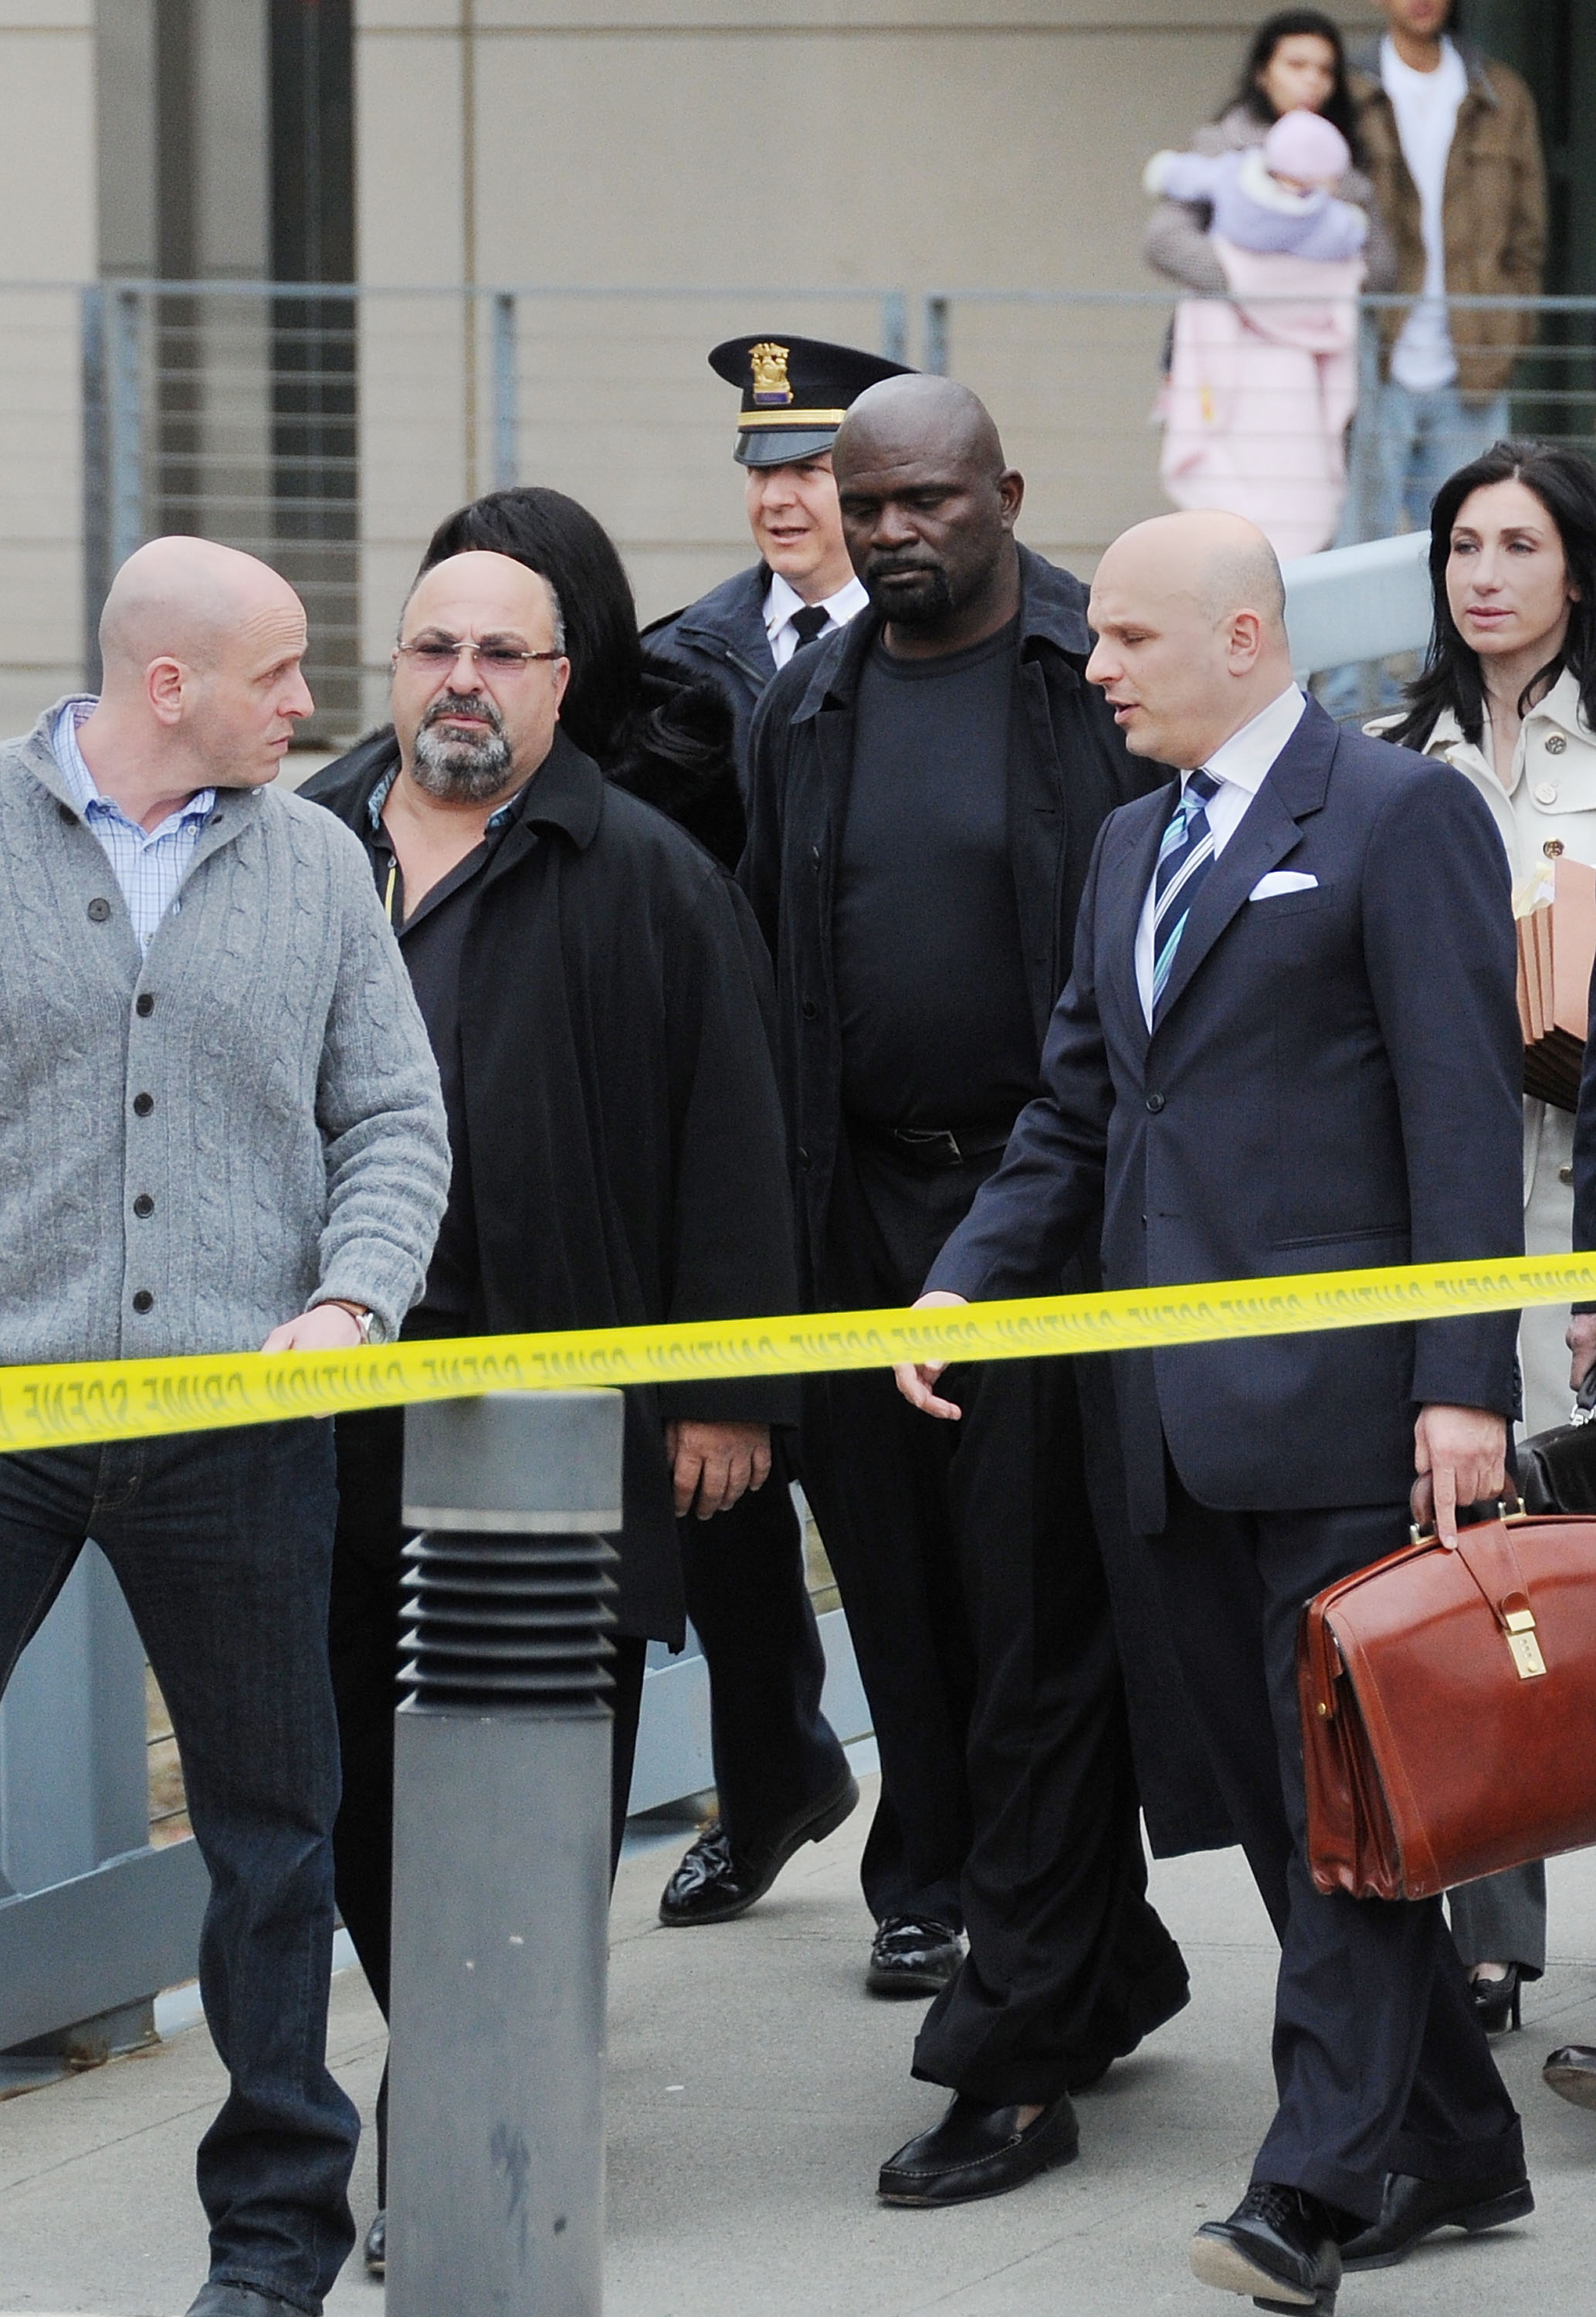 NEW CITY, NY - MARCH 22:  Former professional football player Lawrence Taylor (4rd from L) is seen leaving the courthouse after his hearing at Rockland County Courthouse on March 22, 2011 in New City, New York.  (Photo by Mike Coppola/Getty Images)